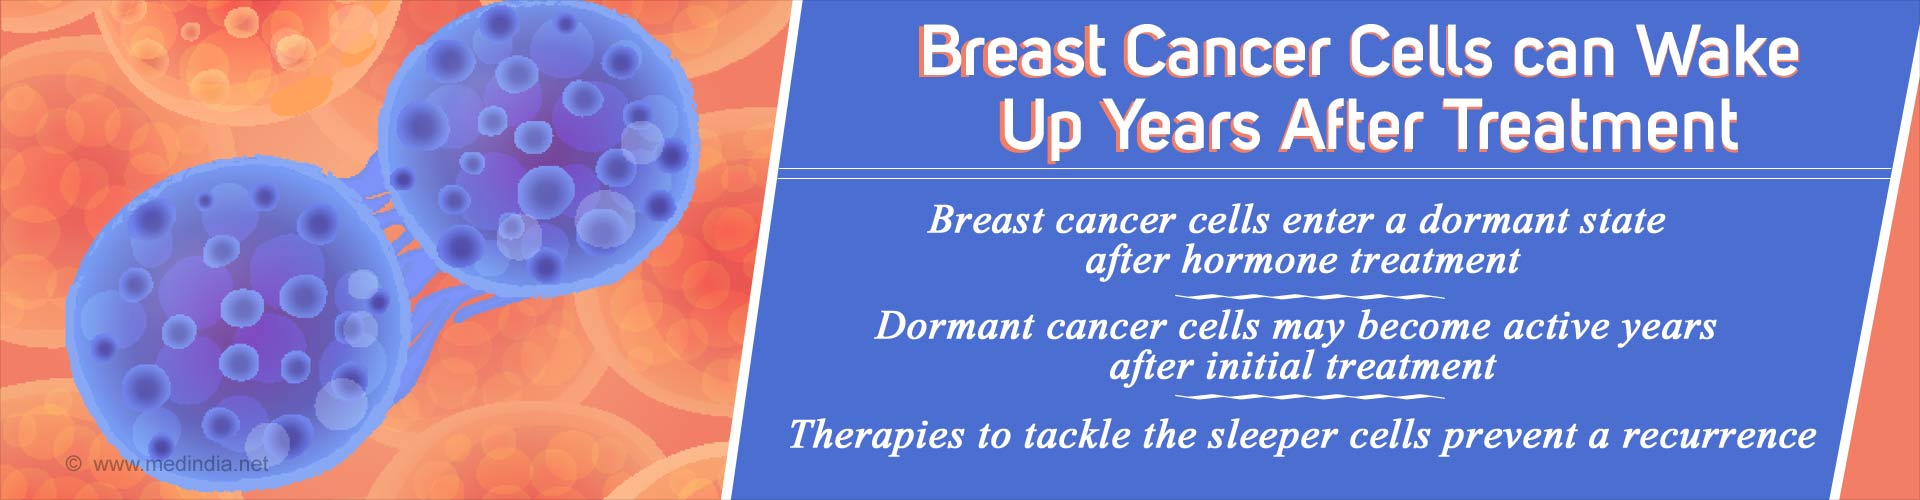 Breast Cancer Cells May Go Into 'Sleeper Mode' After Treatment